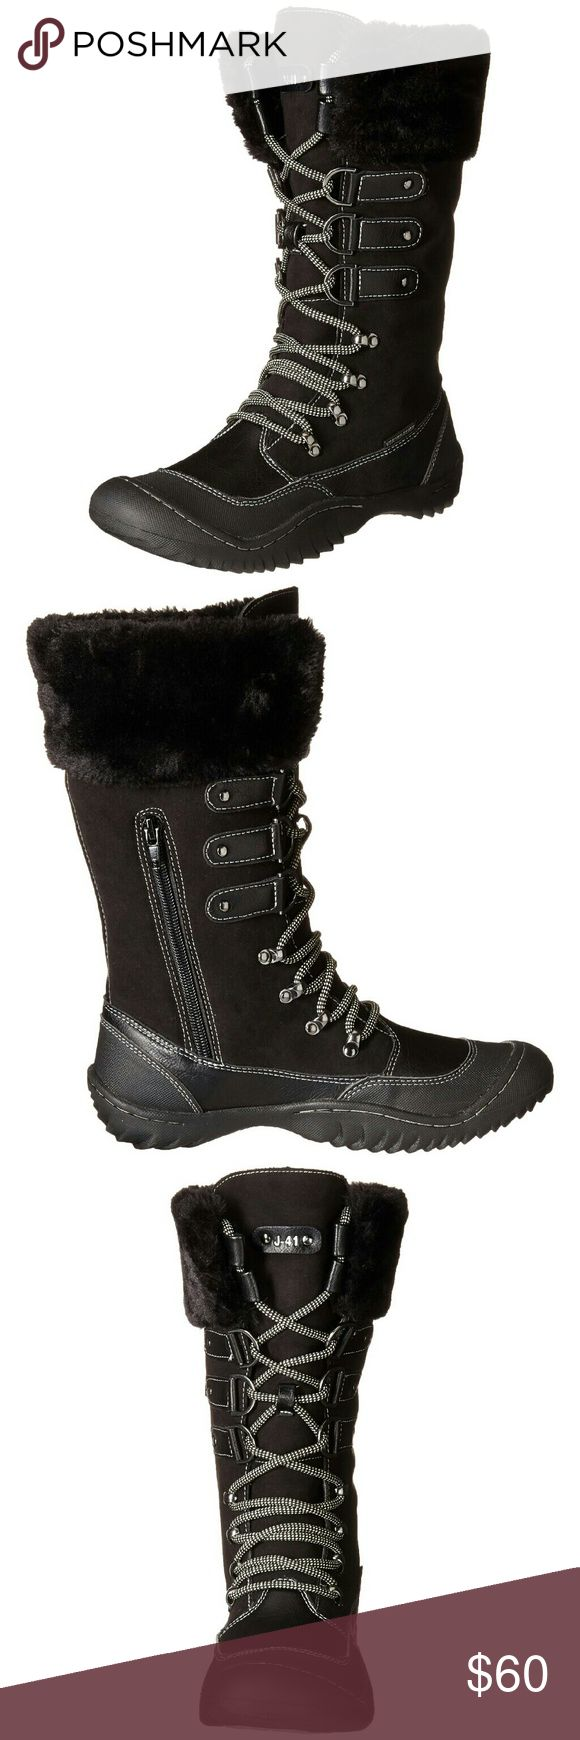 """J-41 Duchess Snow Boots W 10M Vegan Friendly Black 50% Micro Suede/25% Rubber/25% Faux Fur Imported Rubber sole Shaft measures approximately 11"""" from arch Heel measures approximately 1/2"""" Waterproof Eco friendly All terra traction Memory foam insert Faux fur liner great for the cooler weather Made in China  Box may have shelf wear.              Unique and with amazing comfort features the new J-41 Duchess is winter boot royalty! Featuring an outstanding and impeccable design the new Duchess…"""